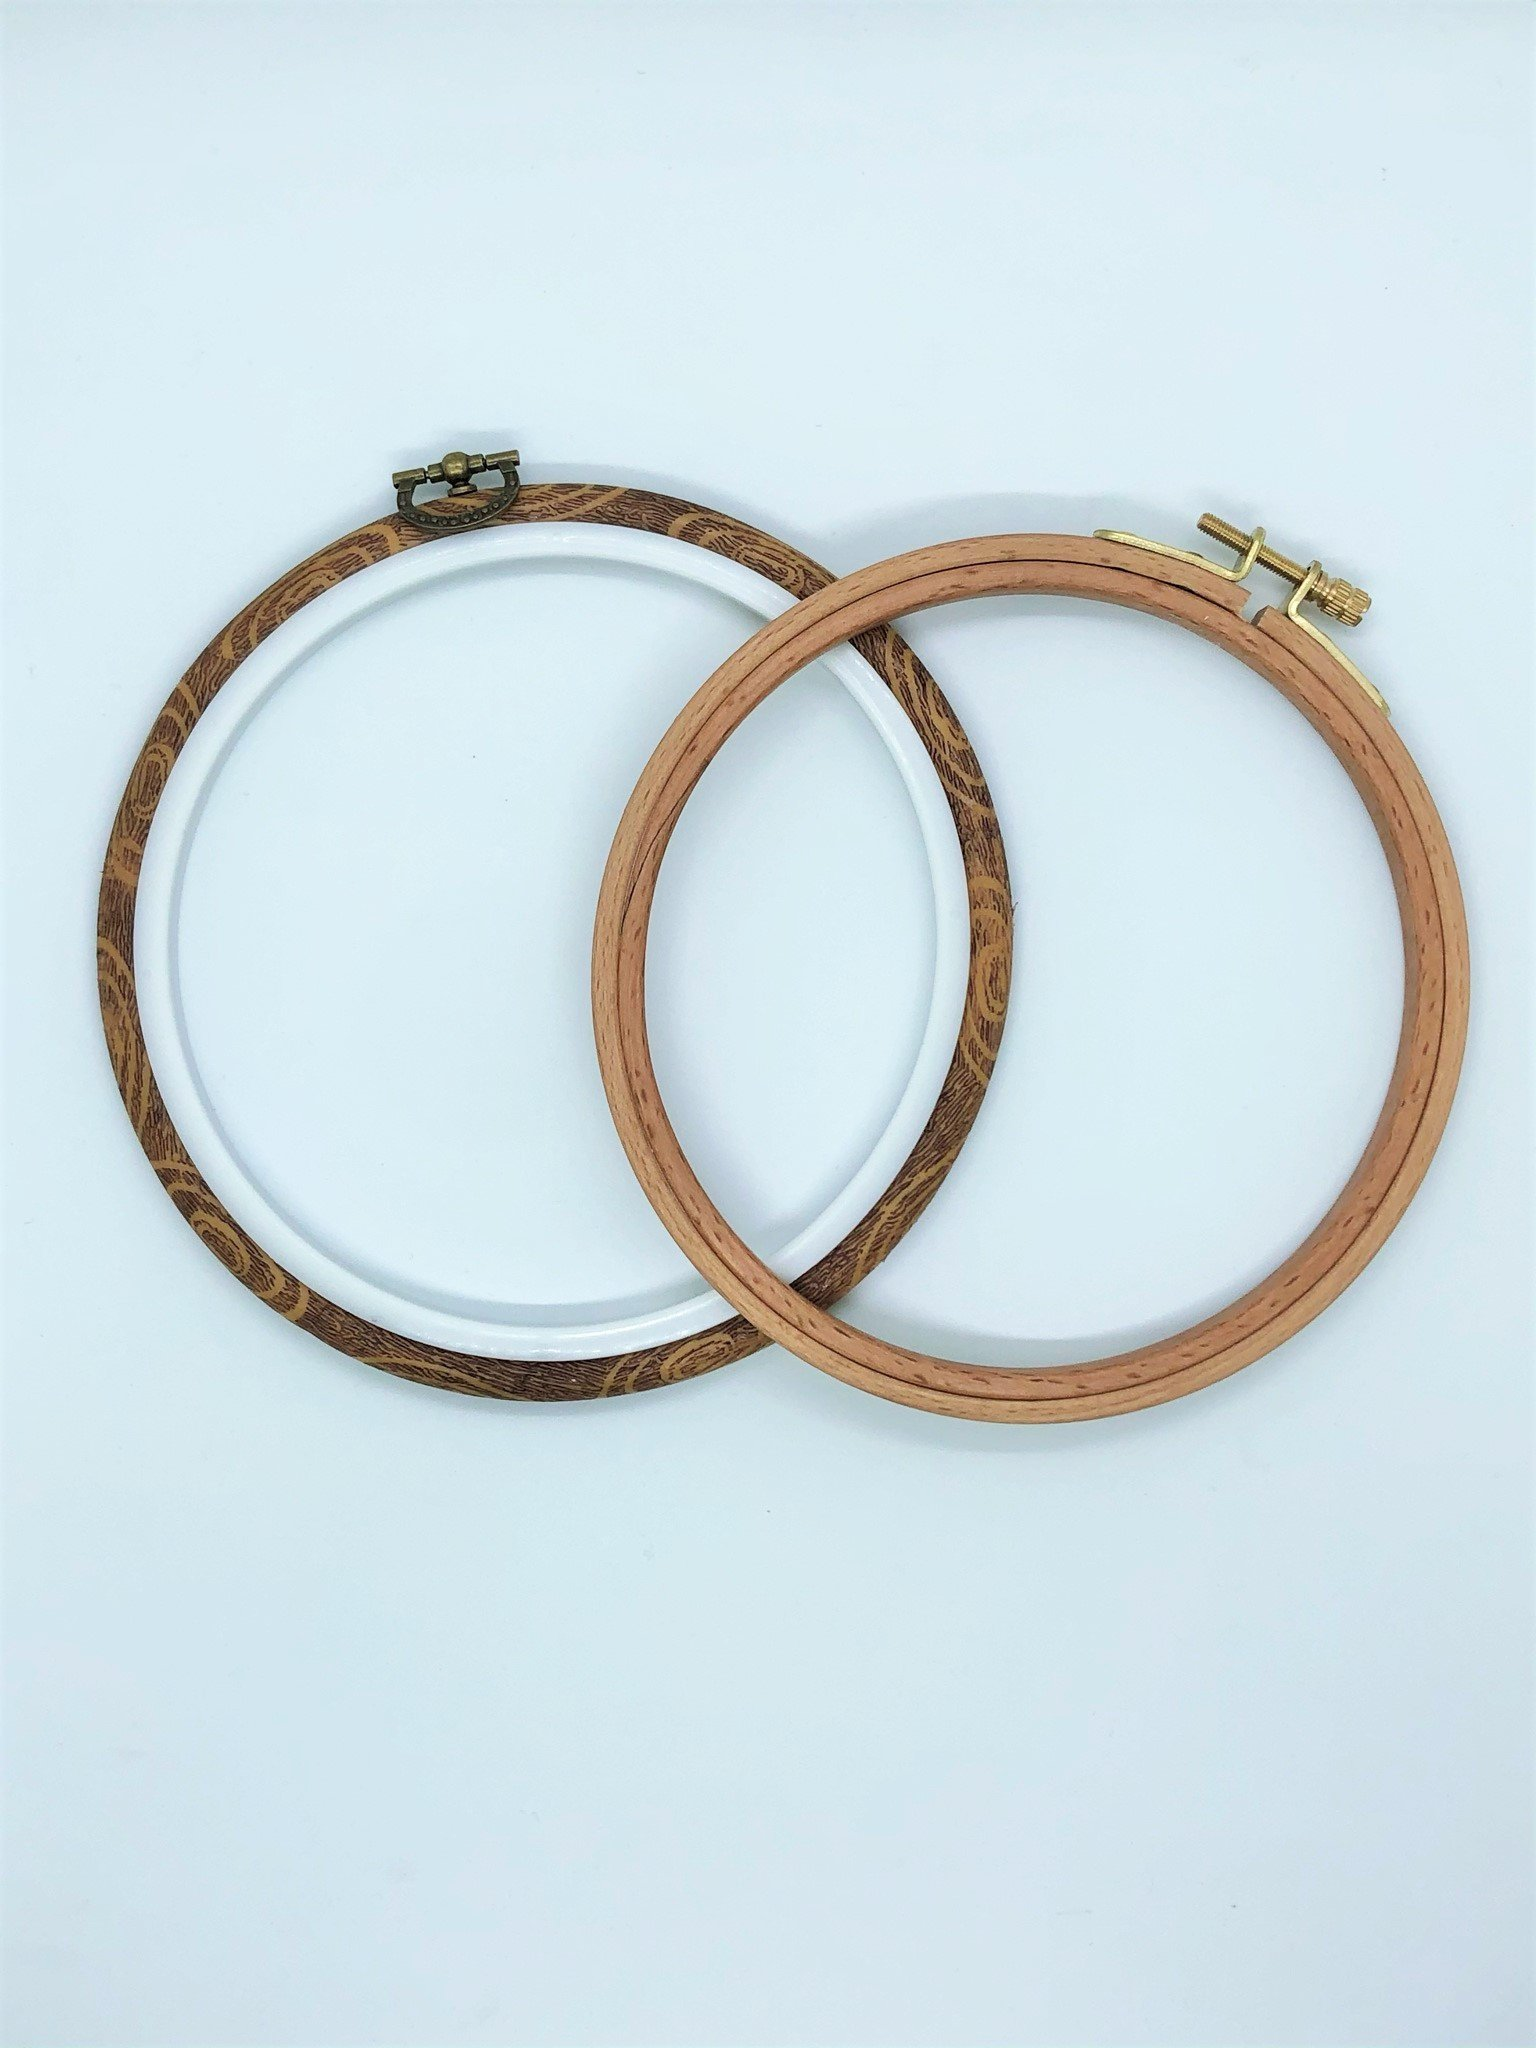 Do You Need A Hoop To Embroider?